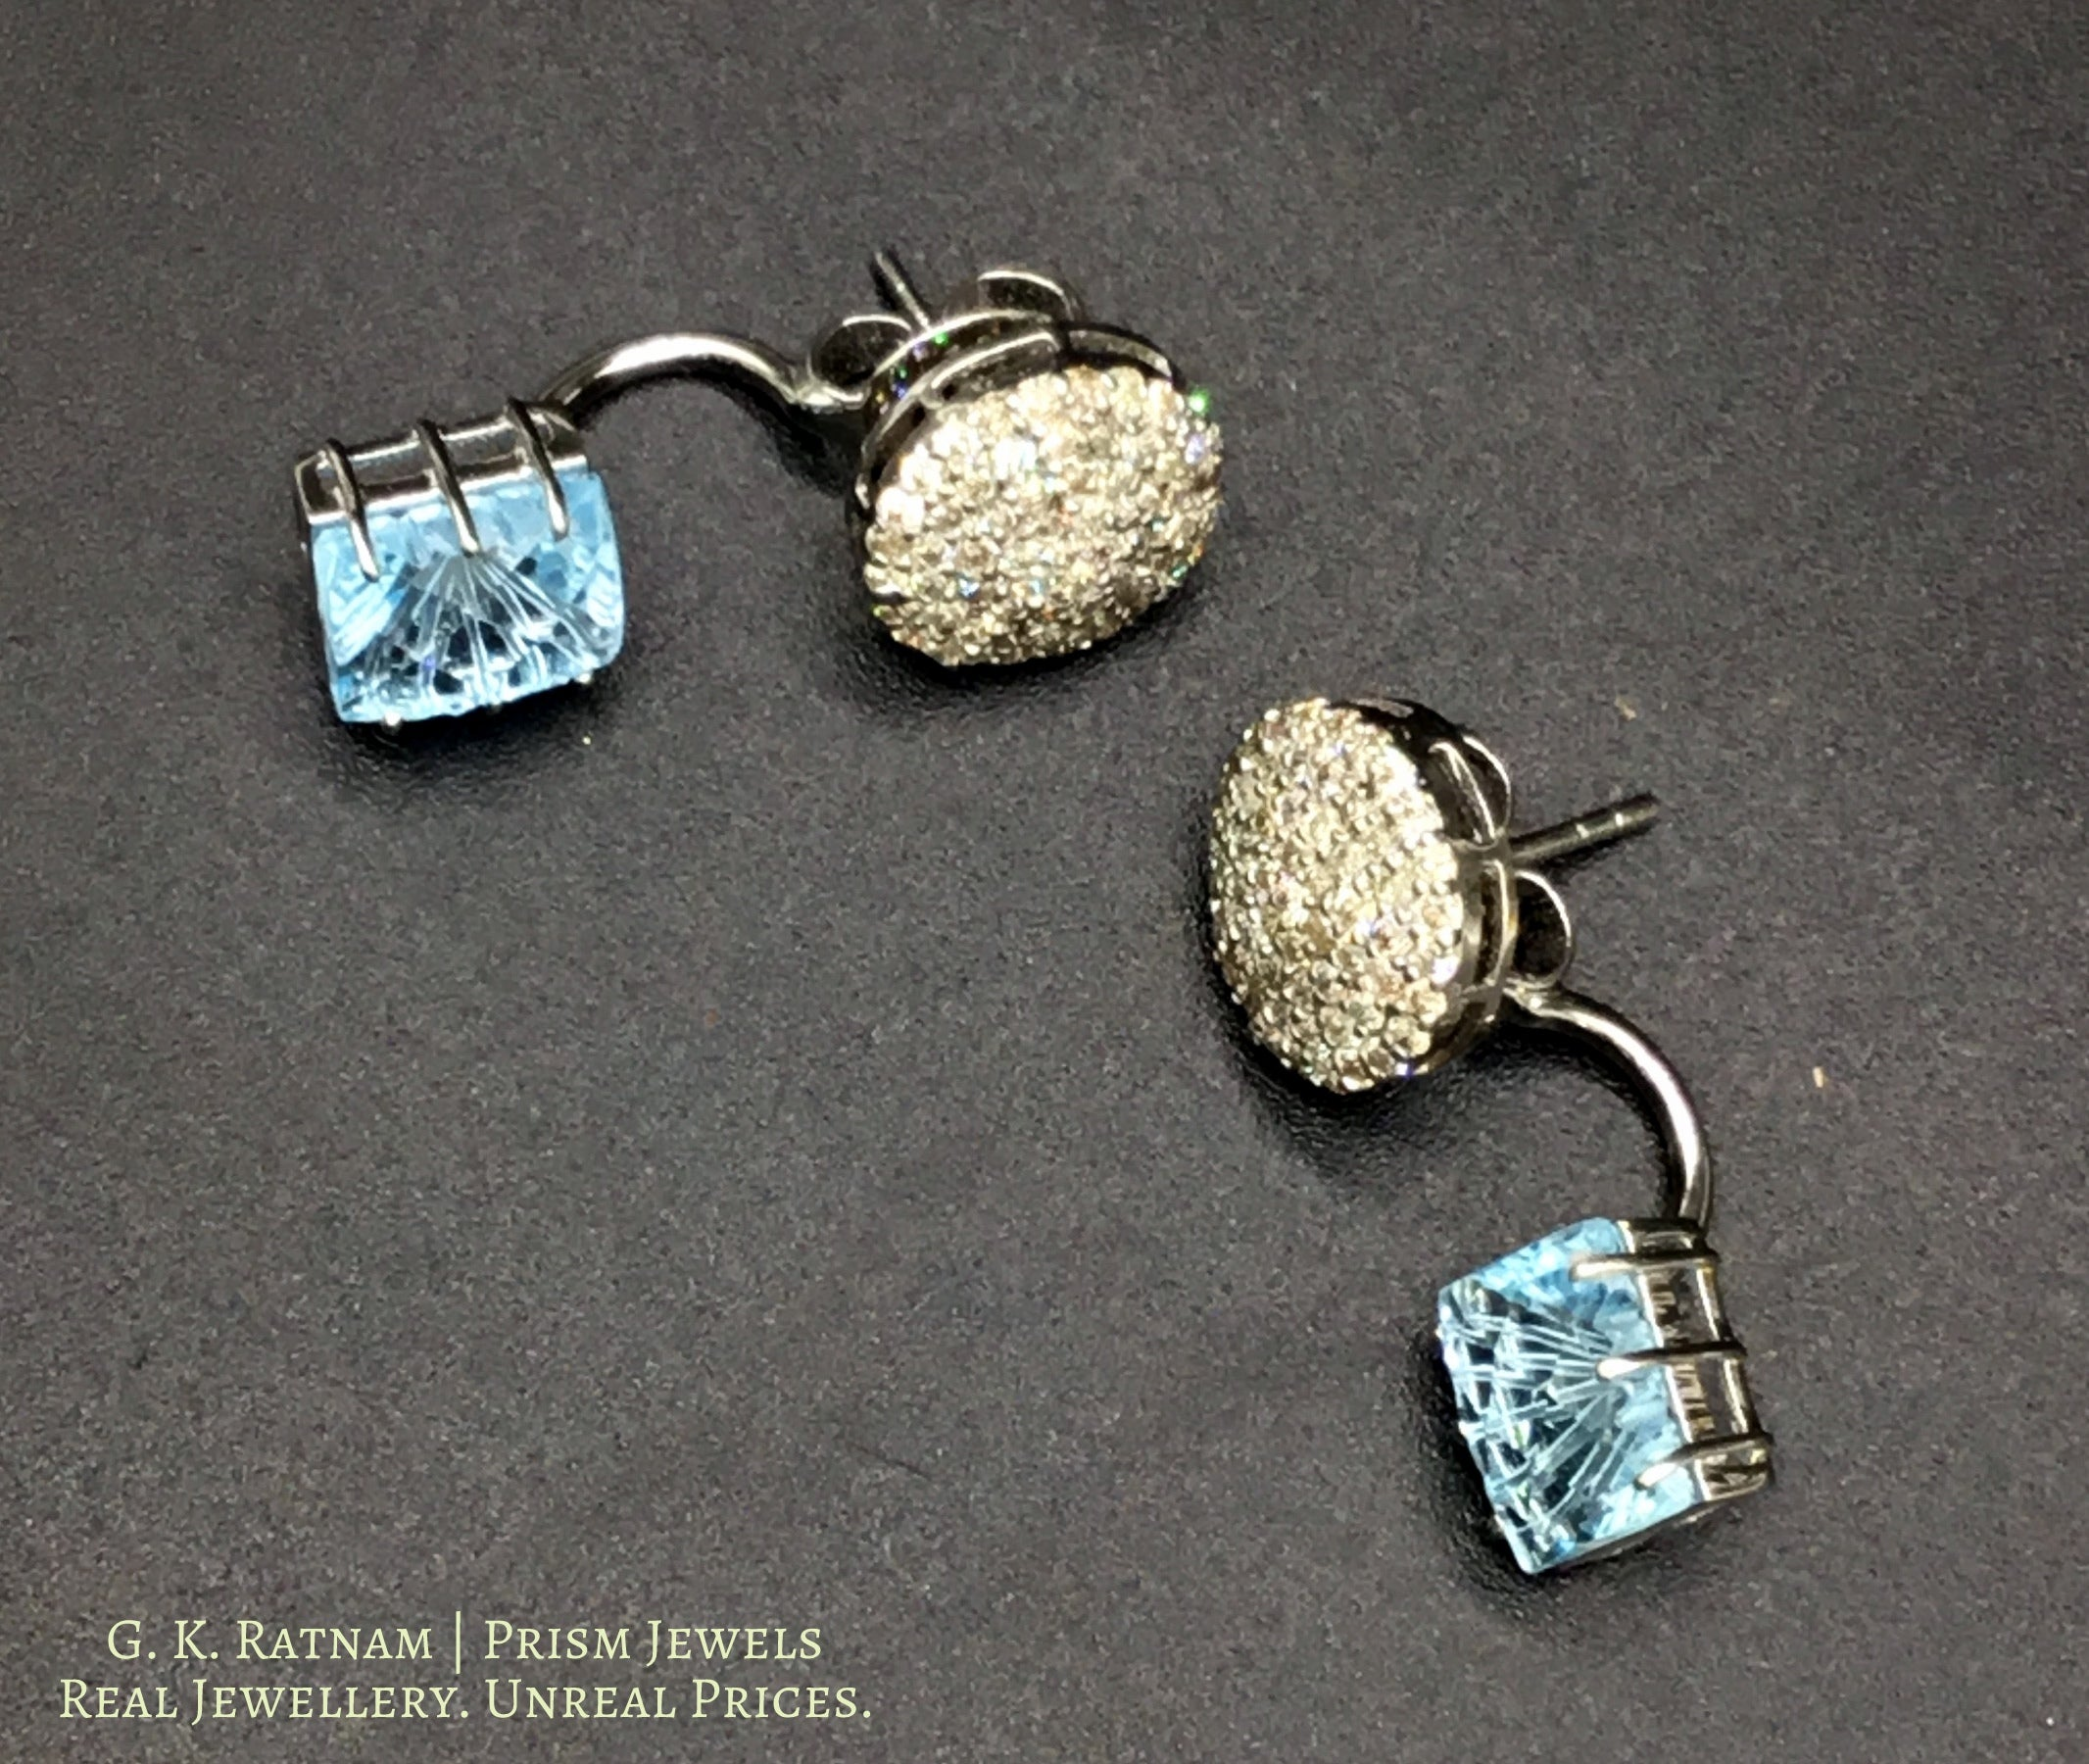 14k Gold and Diamond Tops / Studs Earring Pair with aquamarine-blue stones - gold diamond polki kundan meena jadau jewellery